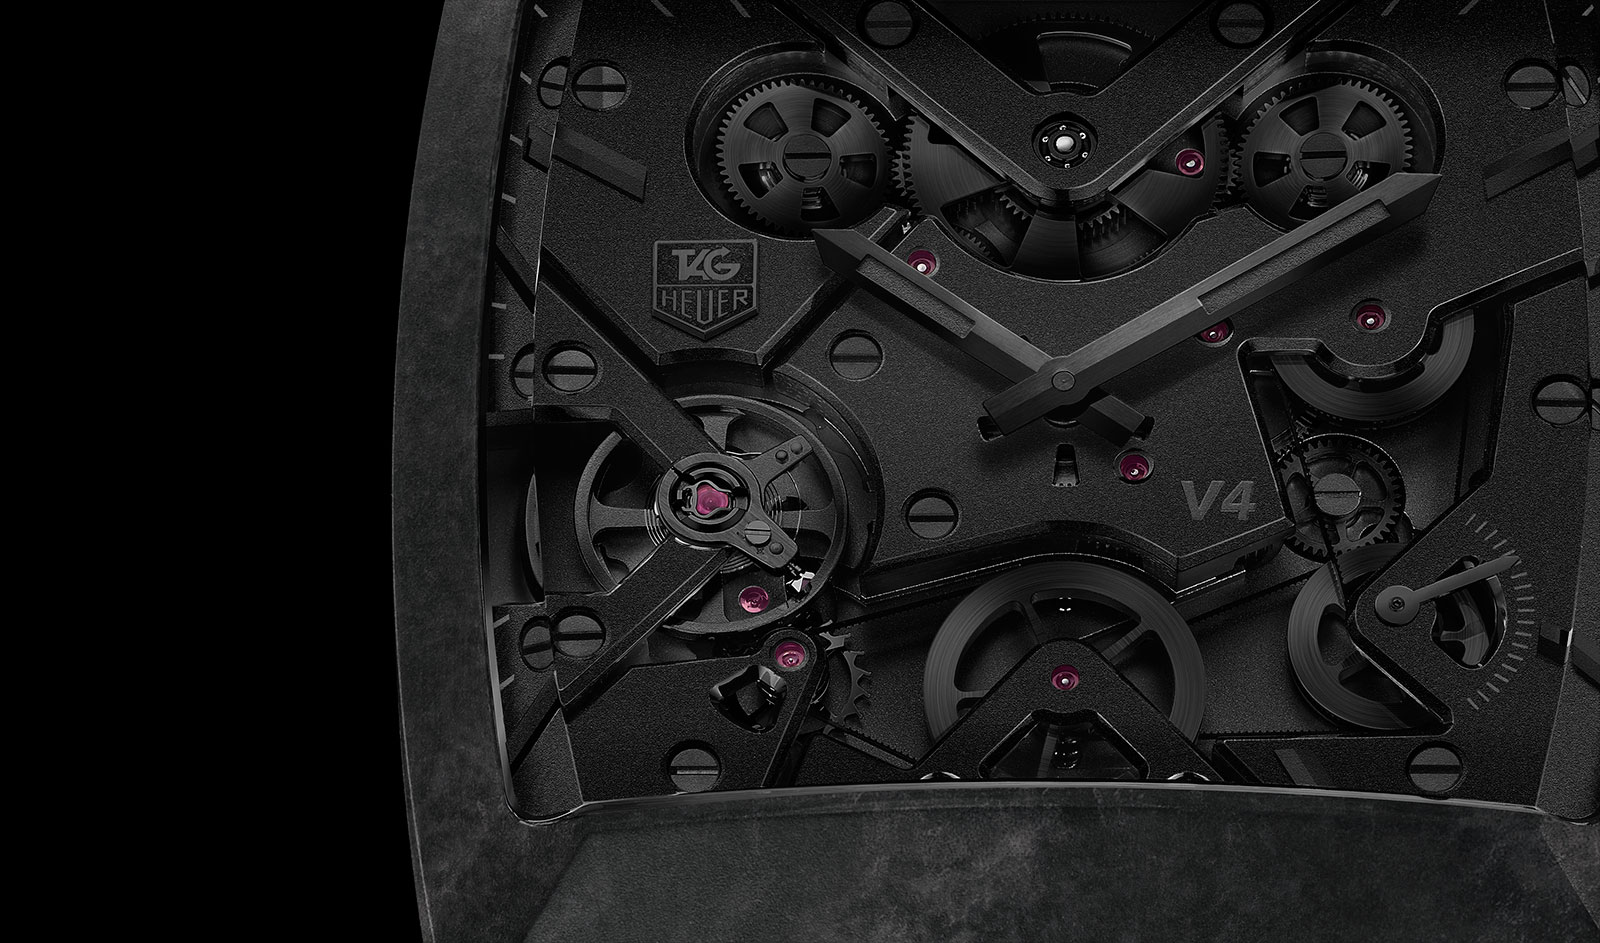 d140fd7719d TAG Heuer Announces The Monaco V4 Phantom, With A Carbon Composite Case And  Movement (With Specs And Price)